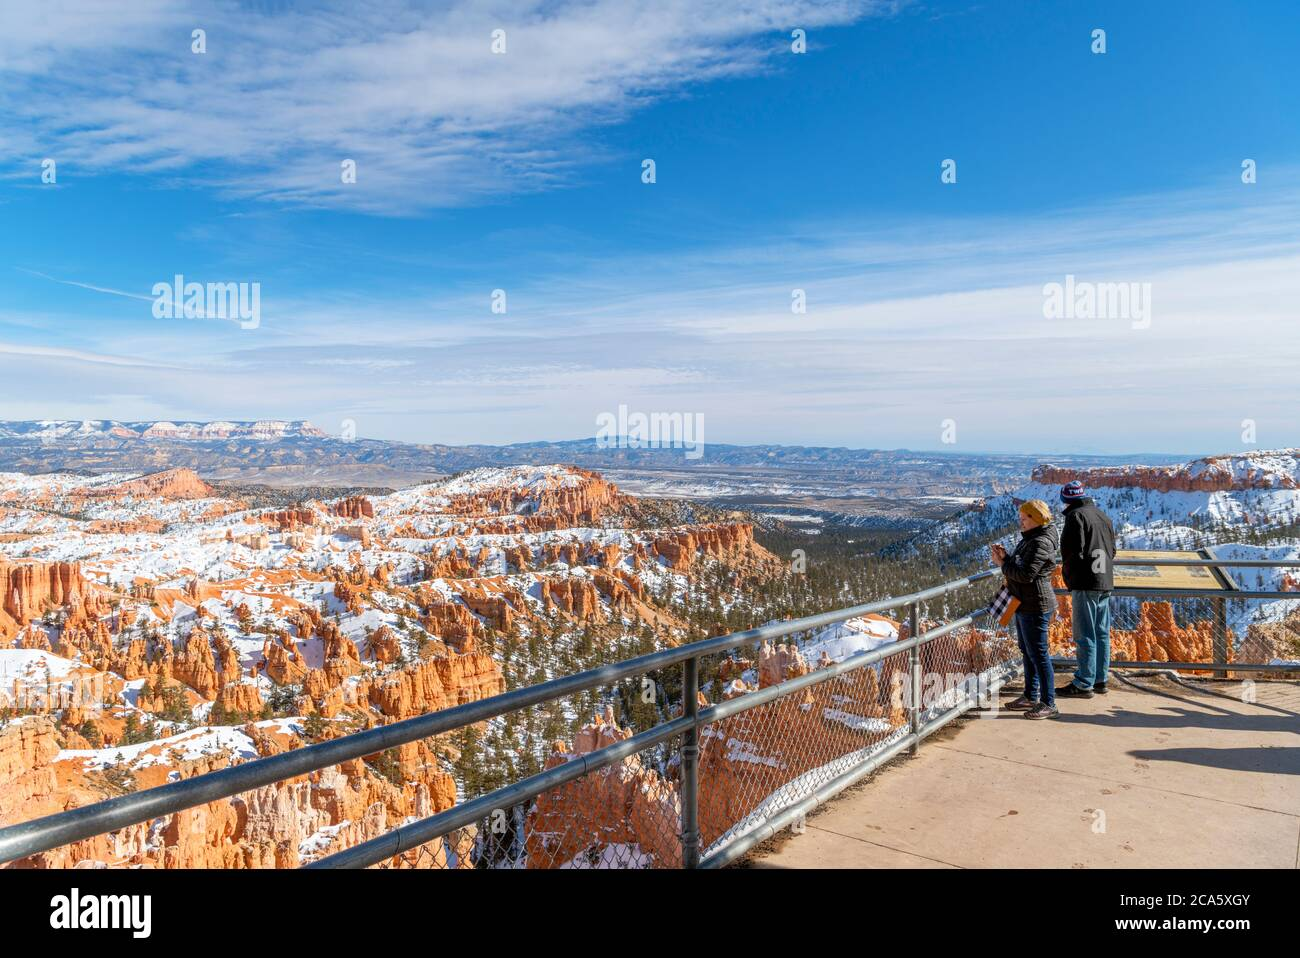 View from Sunset Point scenic lookout, Bryce Amphitheater, Bryce Canyon National Park, Utah, USA Stock Photo